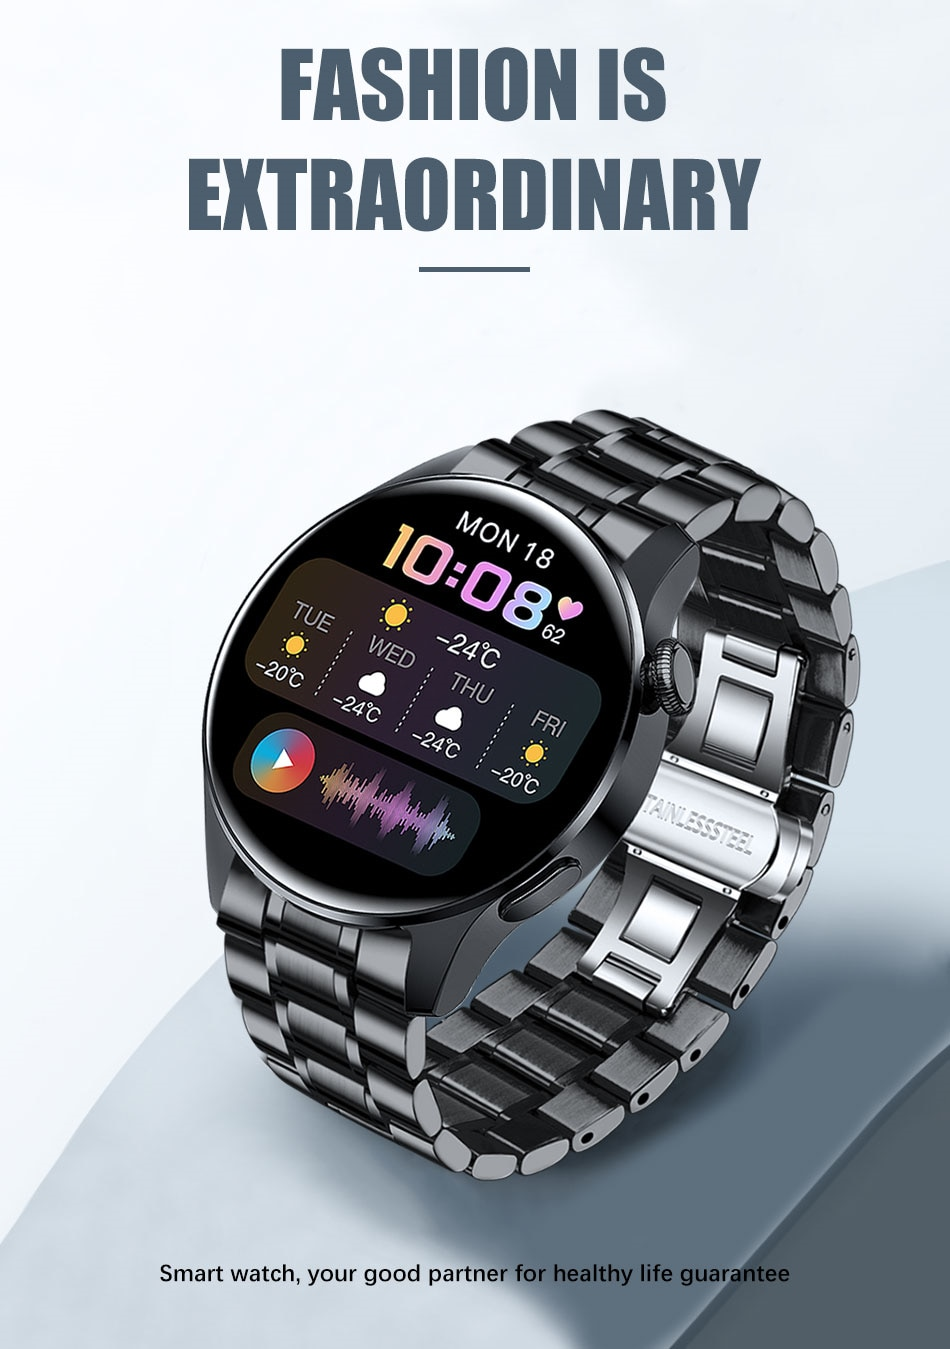 H3053151c8cea4e53a37a7b790650c95bA - LIGE New Bluetooth Call Smart watch Men Full touch Screen Sports fitness watch Bluetooth is Suitable For Android ios Smart watch